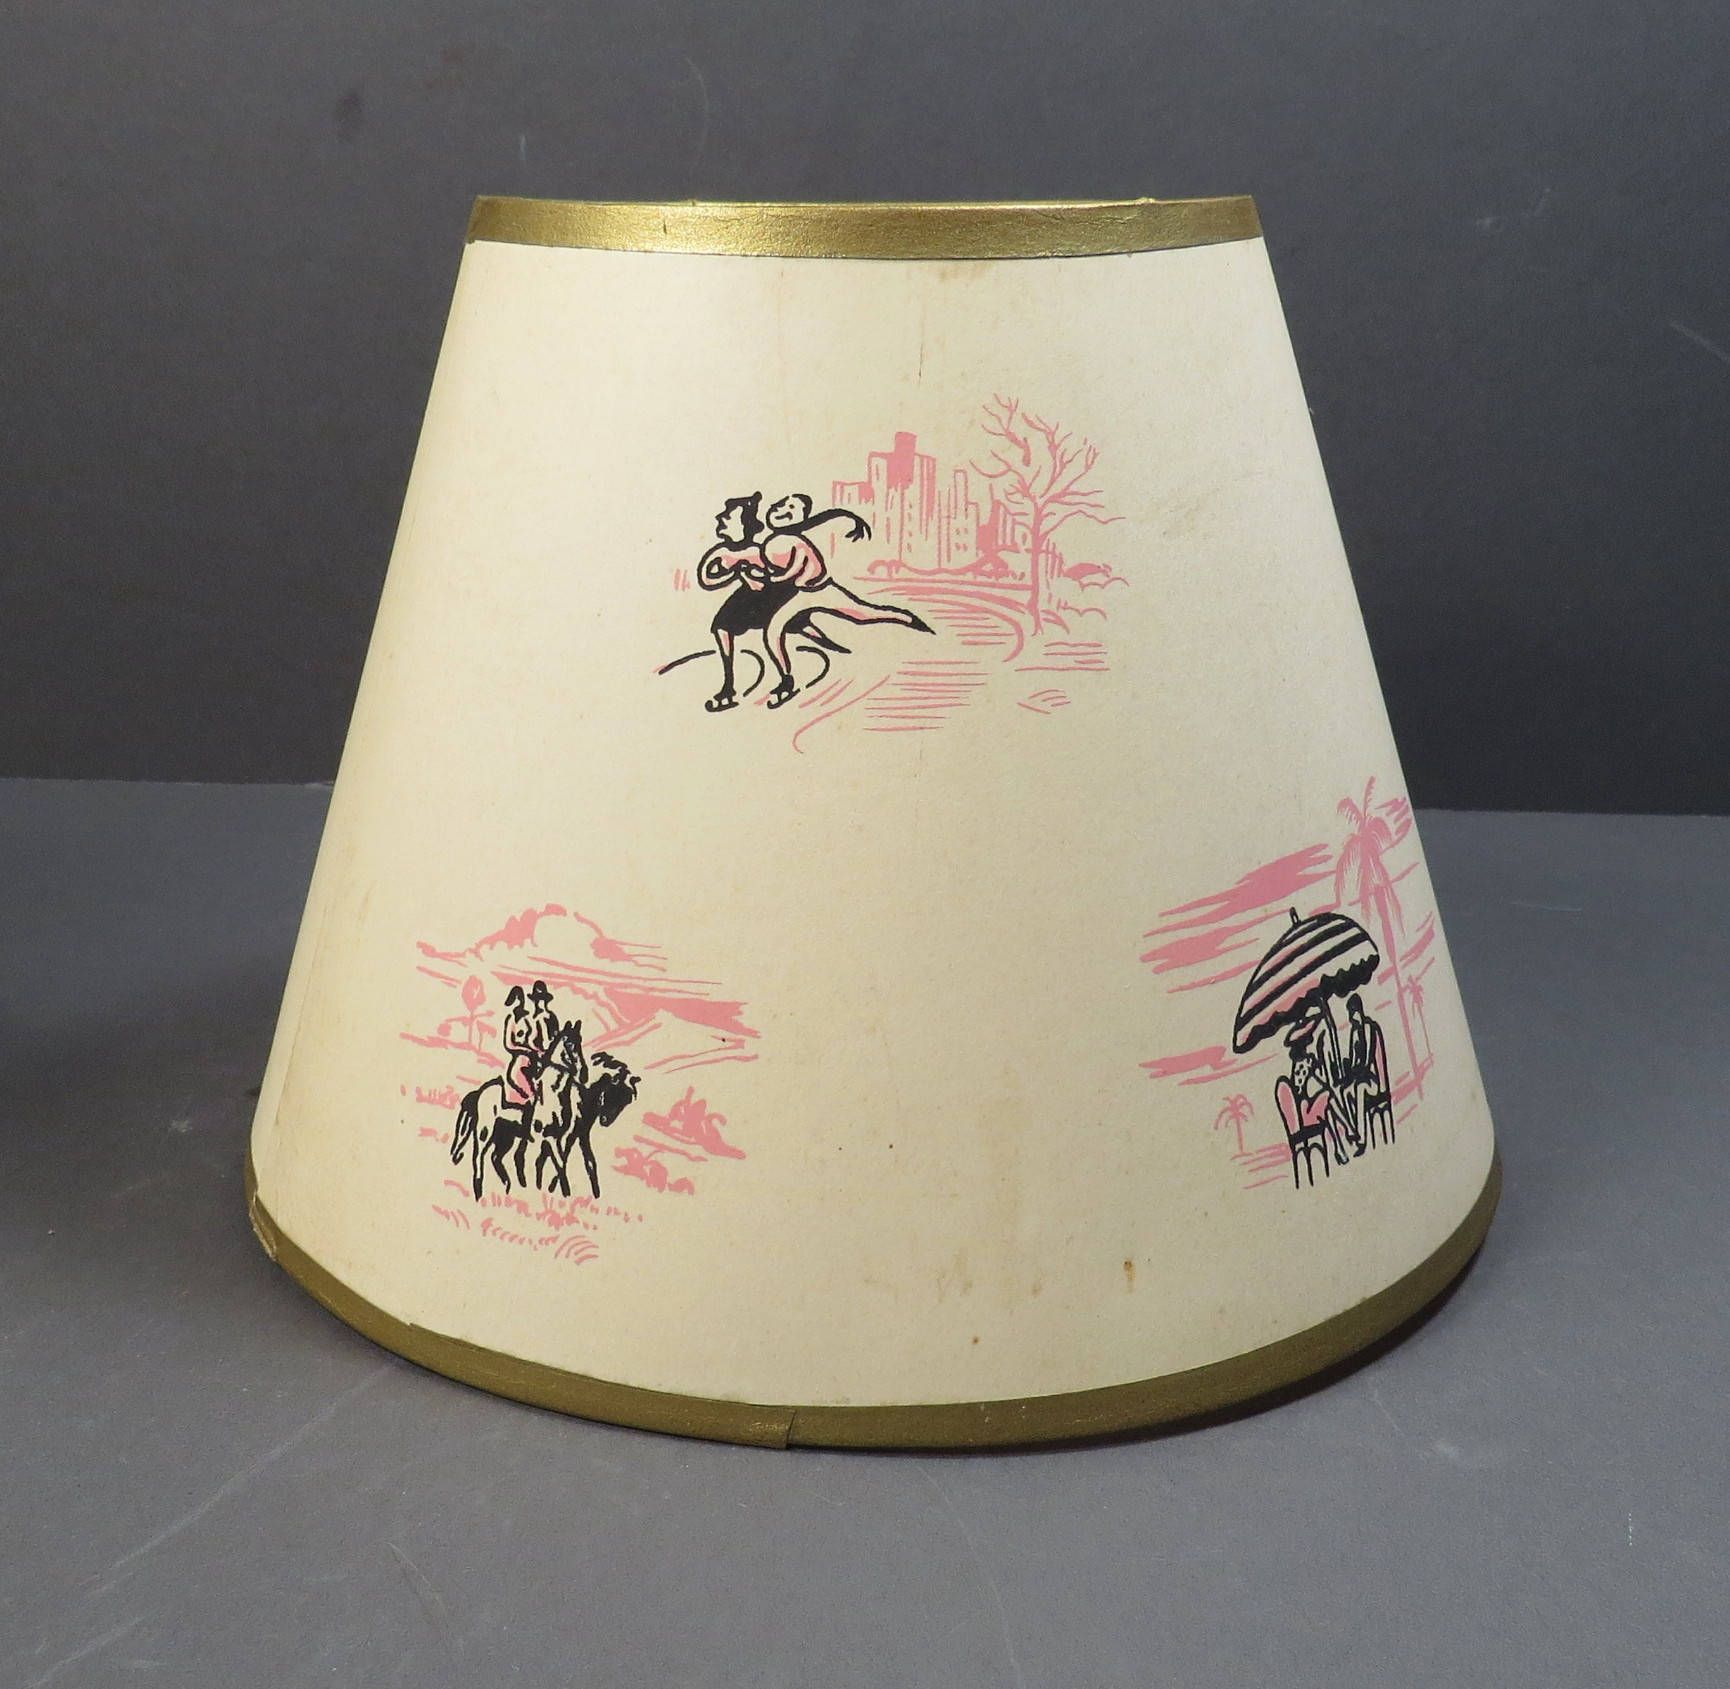 Romantic interludes paper clip on lamp shade vintage 1940s 1950s romantic interludes paper clip on lamp shade vintage 1940s 1950s shabby chic parchment paper lamp shade aloadofball Image collections